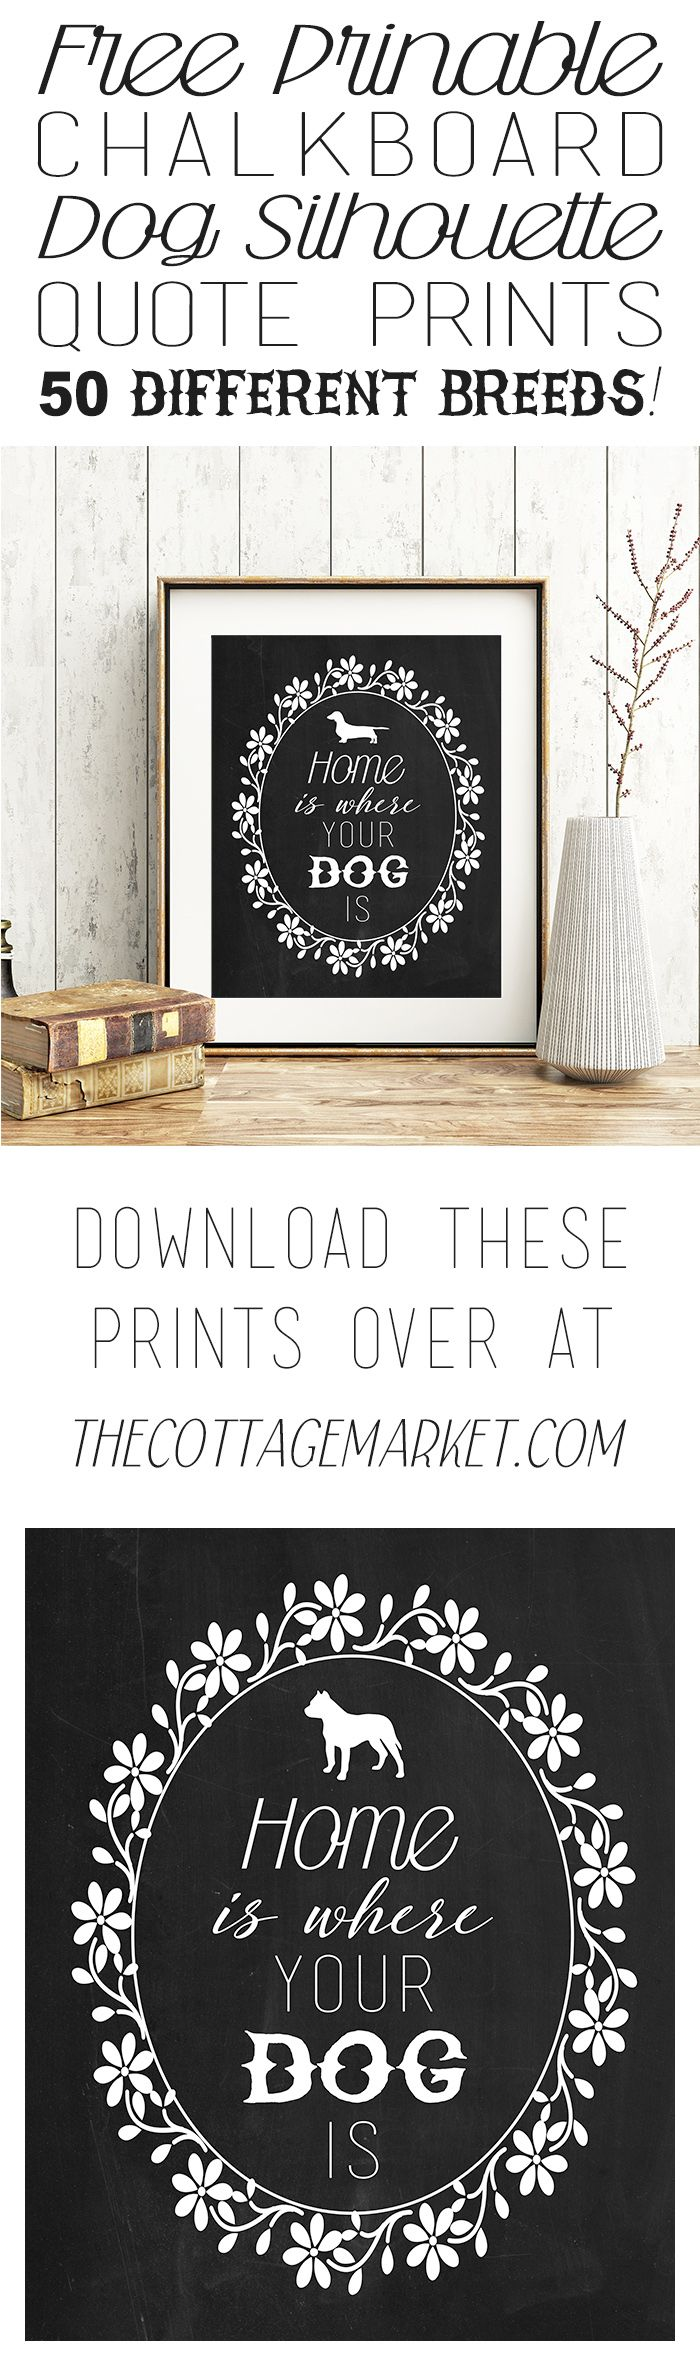 Your choice of 50 dogs+ Free Printable Chalkboard Dog Silhouette Quote Prints - The Cottage Market